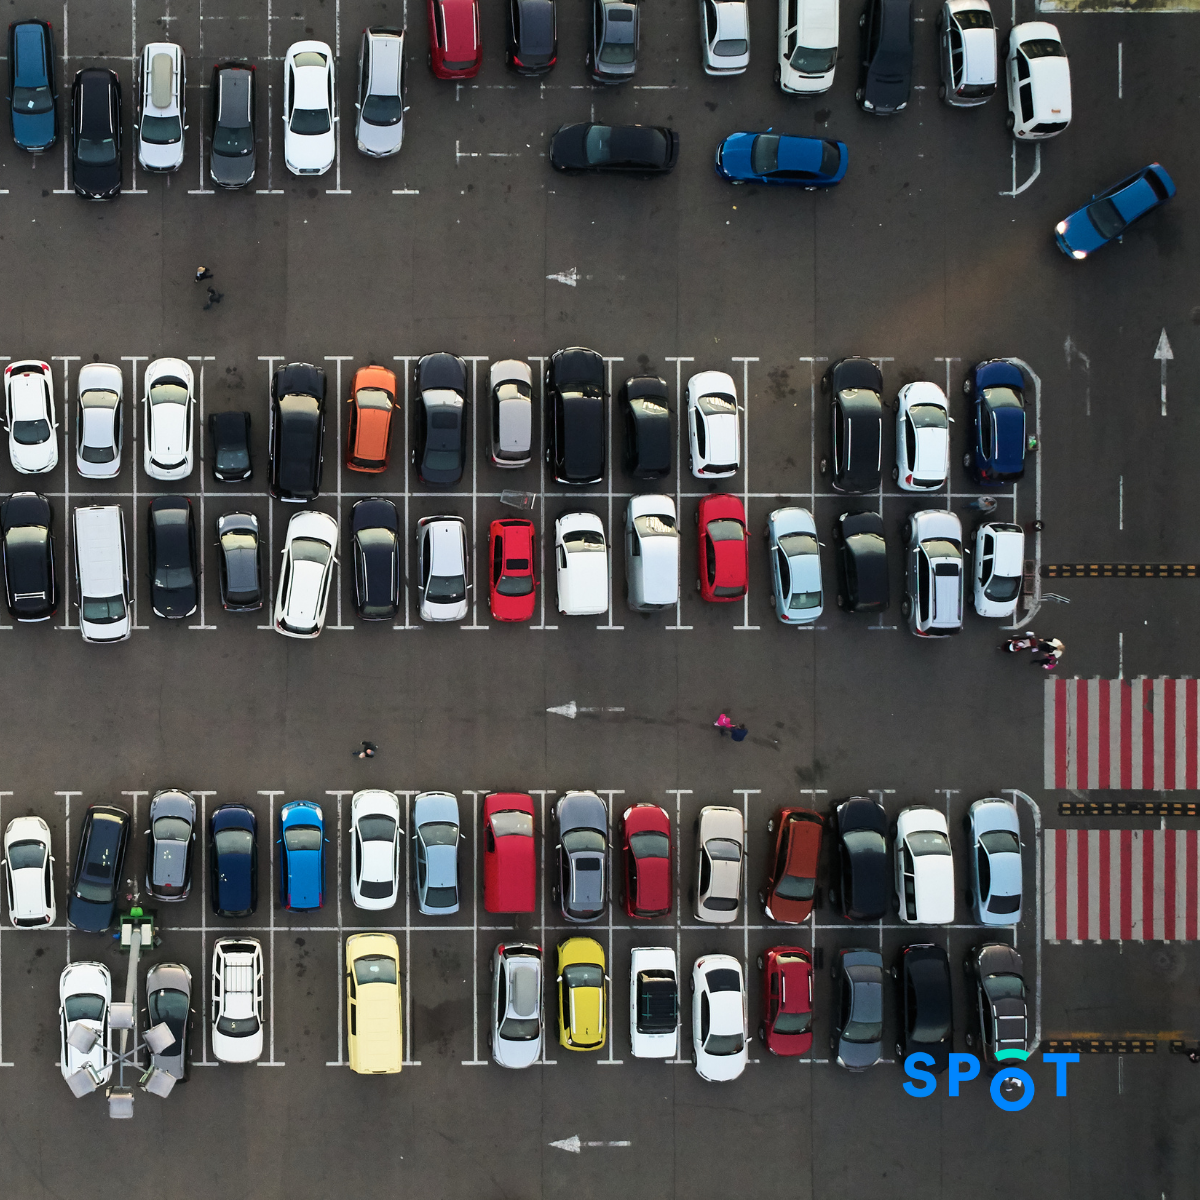 A congested parking lot, to show how the parking industry is extremely low tech